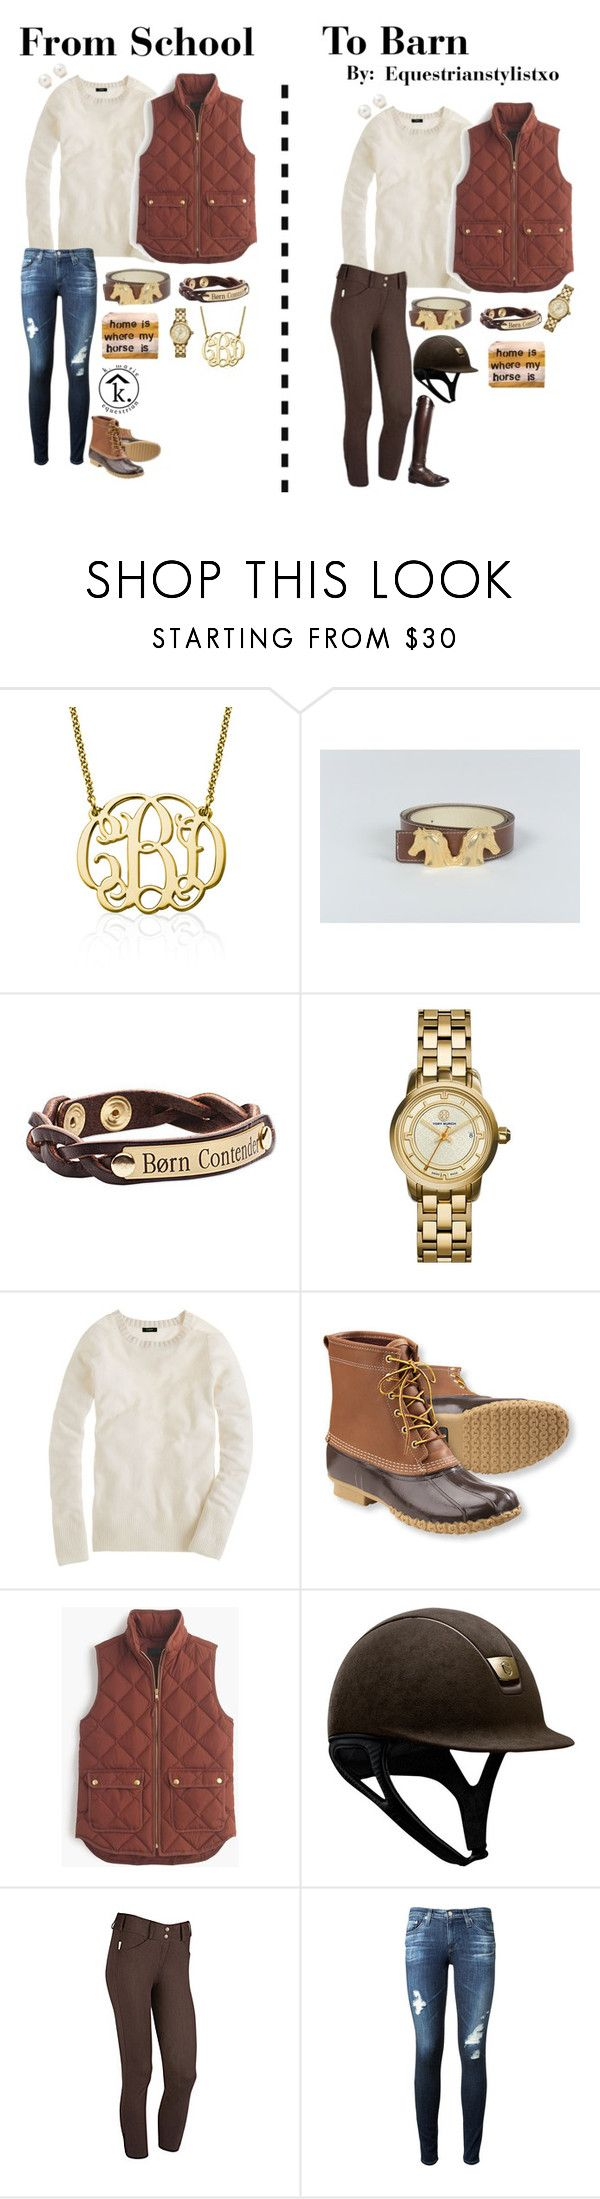 School to Barn with K.Marie Equestrian by adastaley on Polyvore, Use code AdaS10 for 10% off your next purchase at K.Marie Equestrian